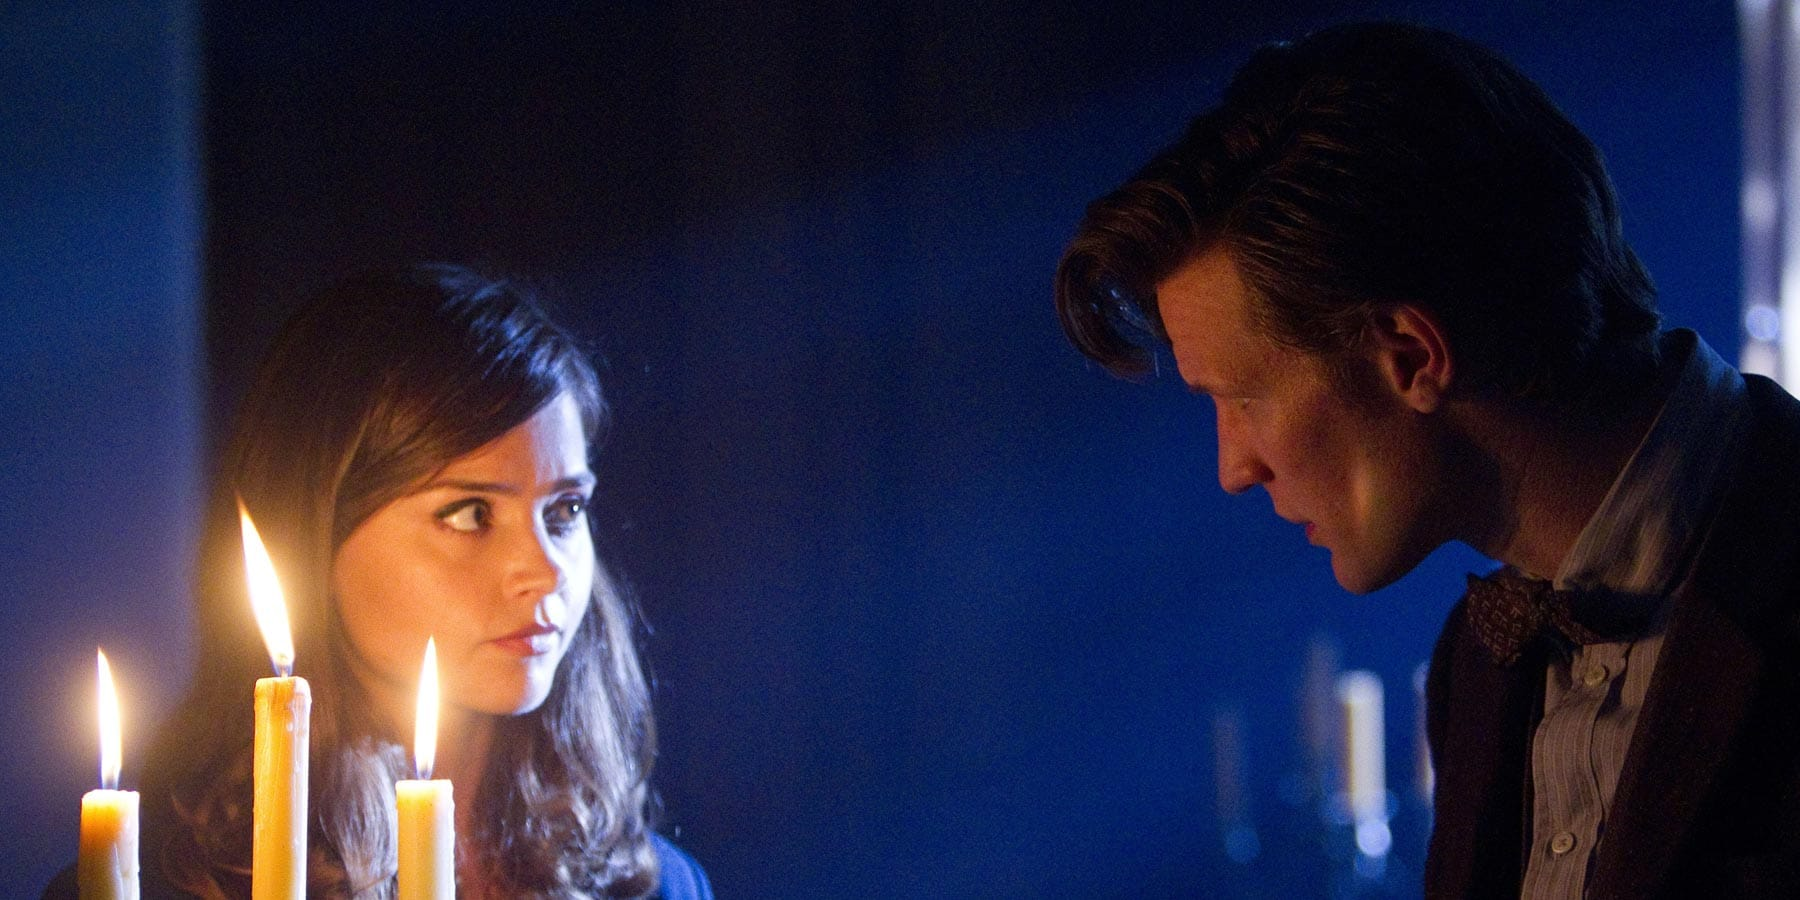 Clara and The Doctor investigating Caliburn House, 2013